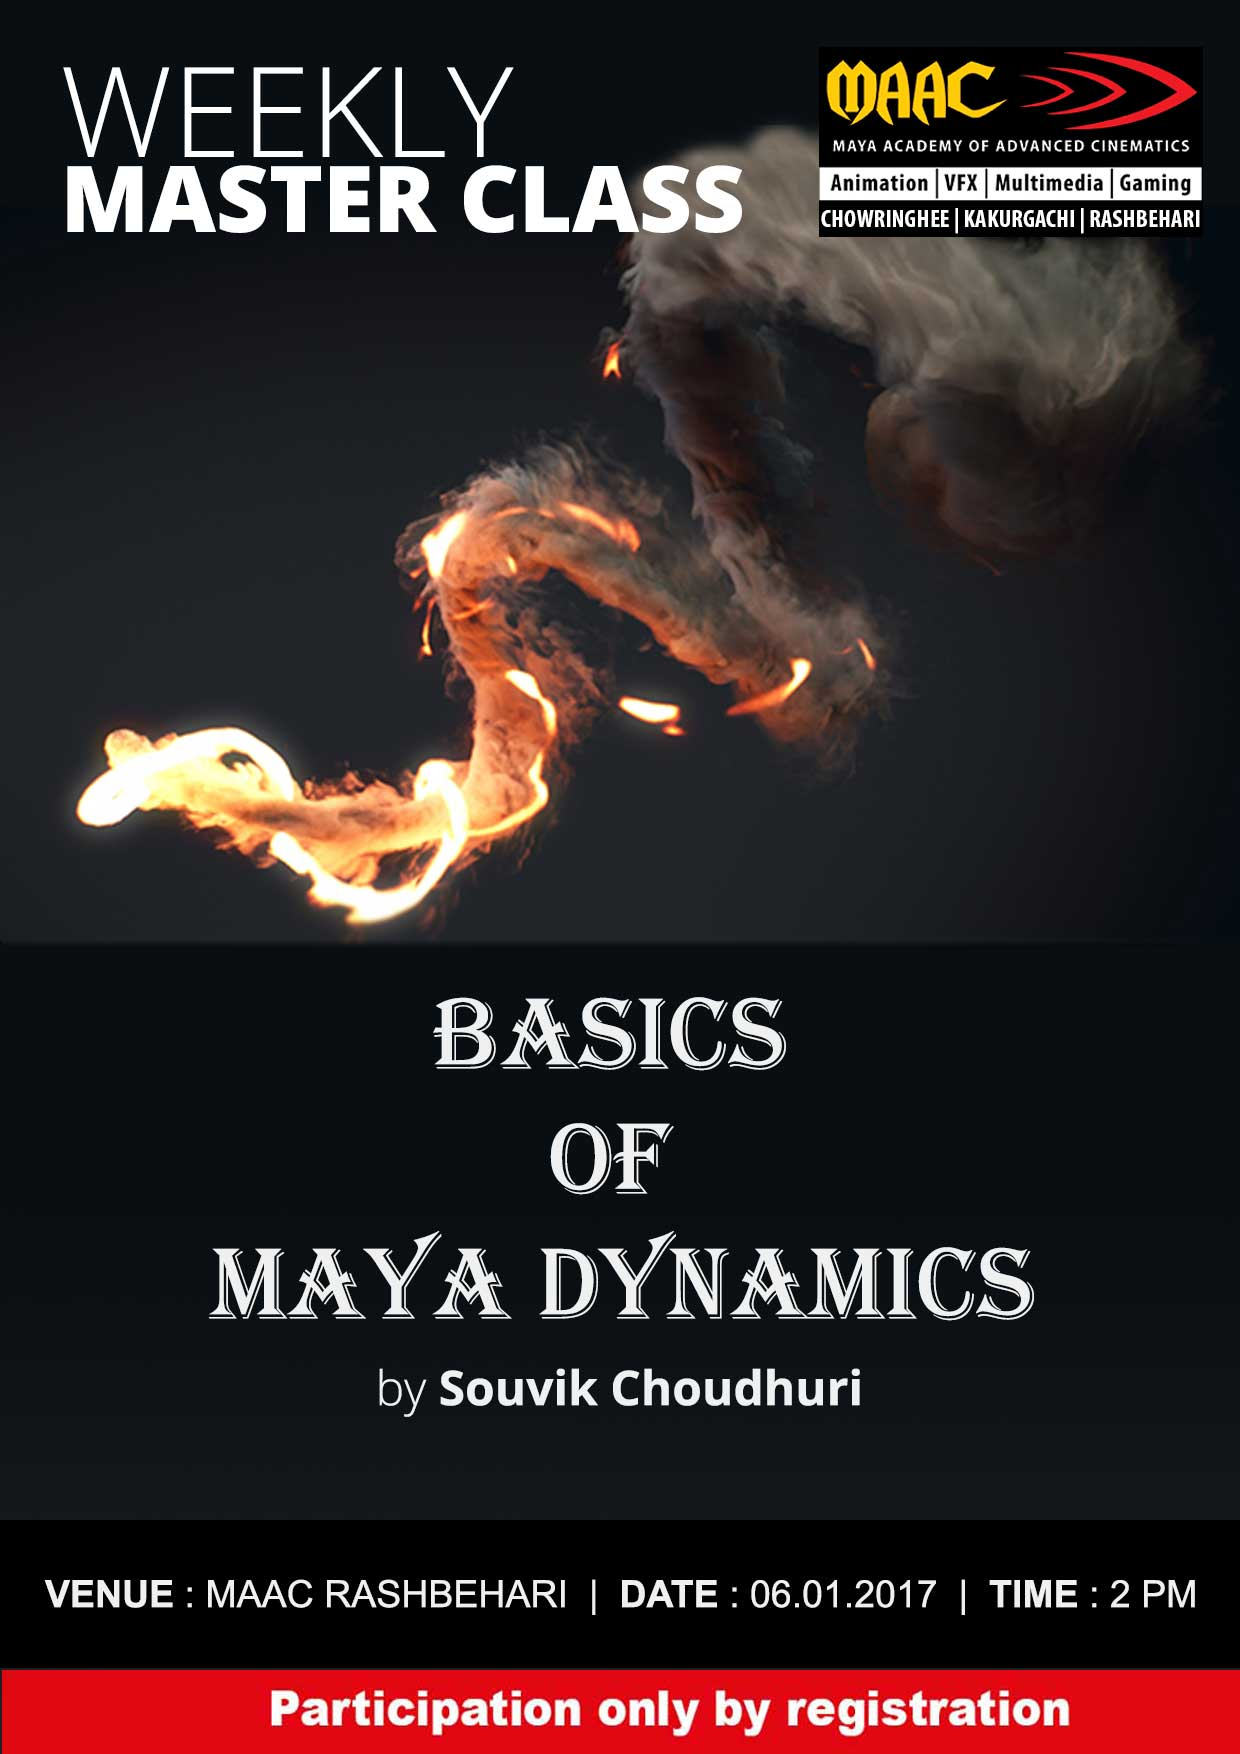 Weekly Master Class on Basics of Maya Dynamics - Souvik Choudhuri